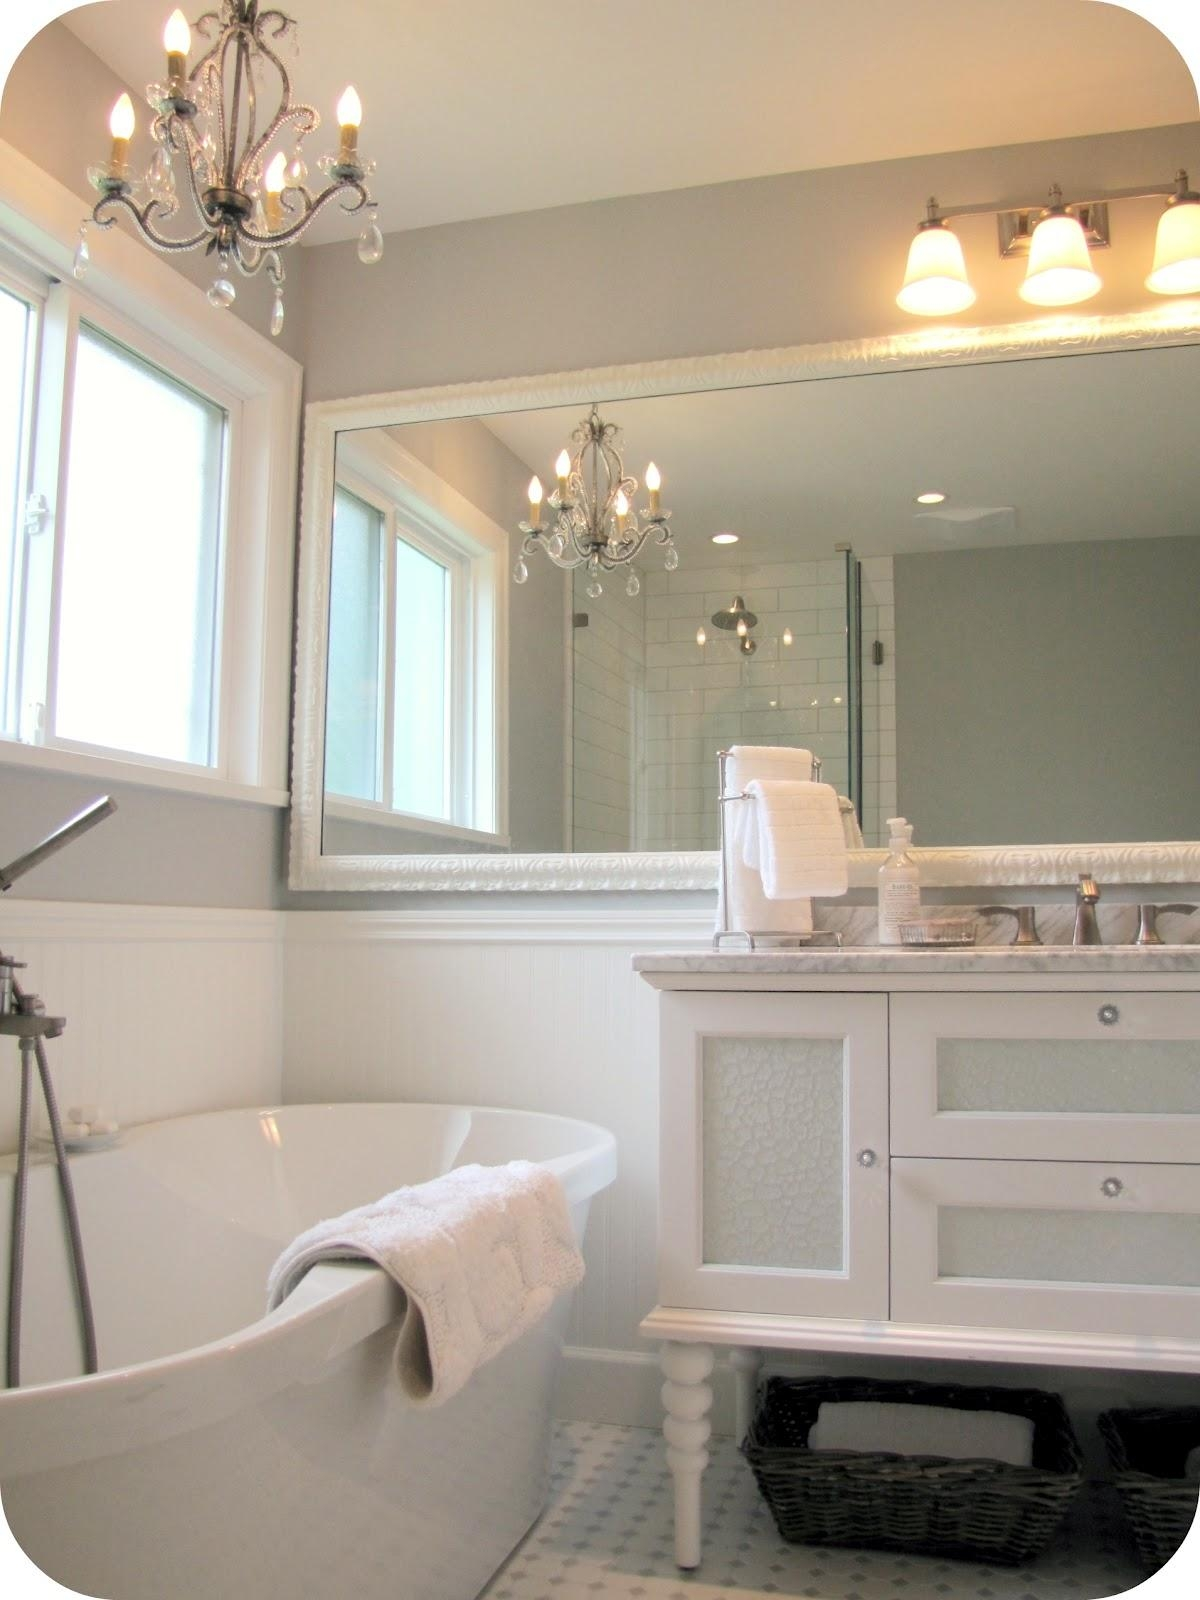 Bathroom Wall Mirrors – Dutchglow Within Large Bathroom Wall Mirrors (Image 9 of 20)